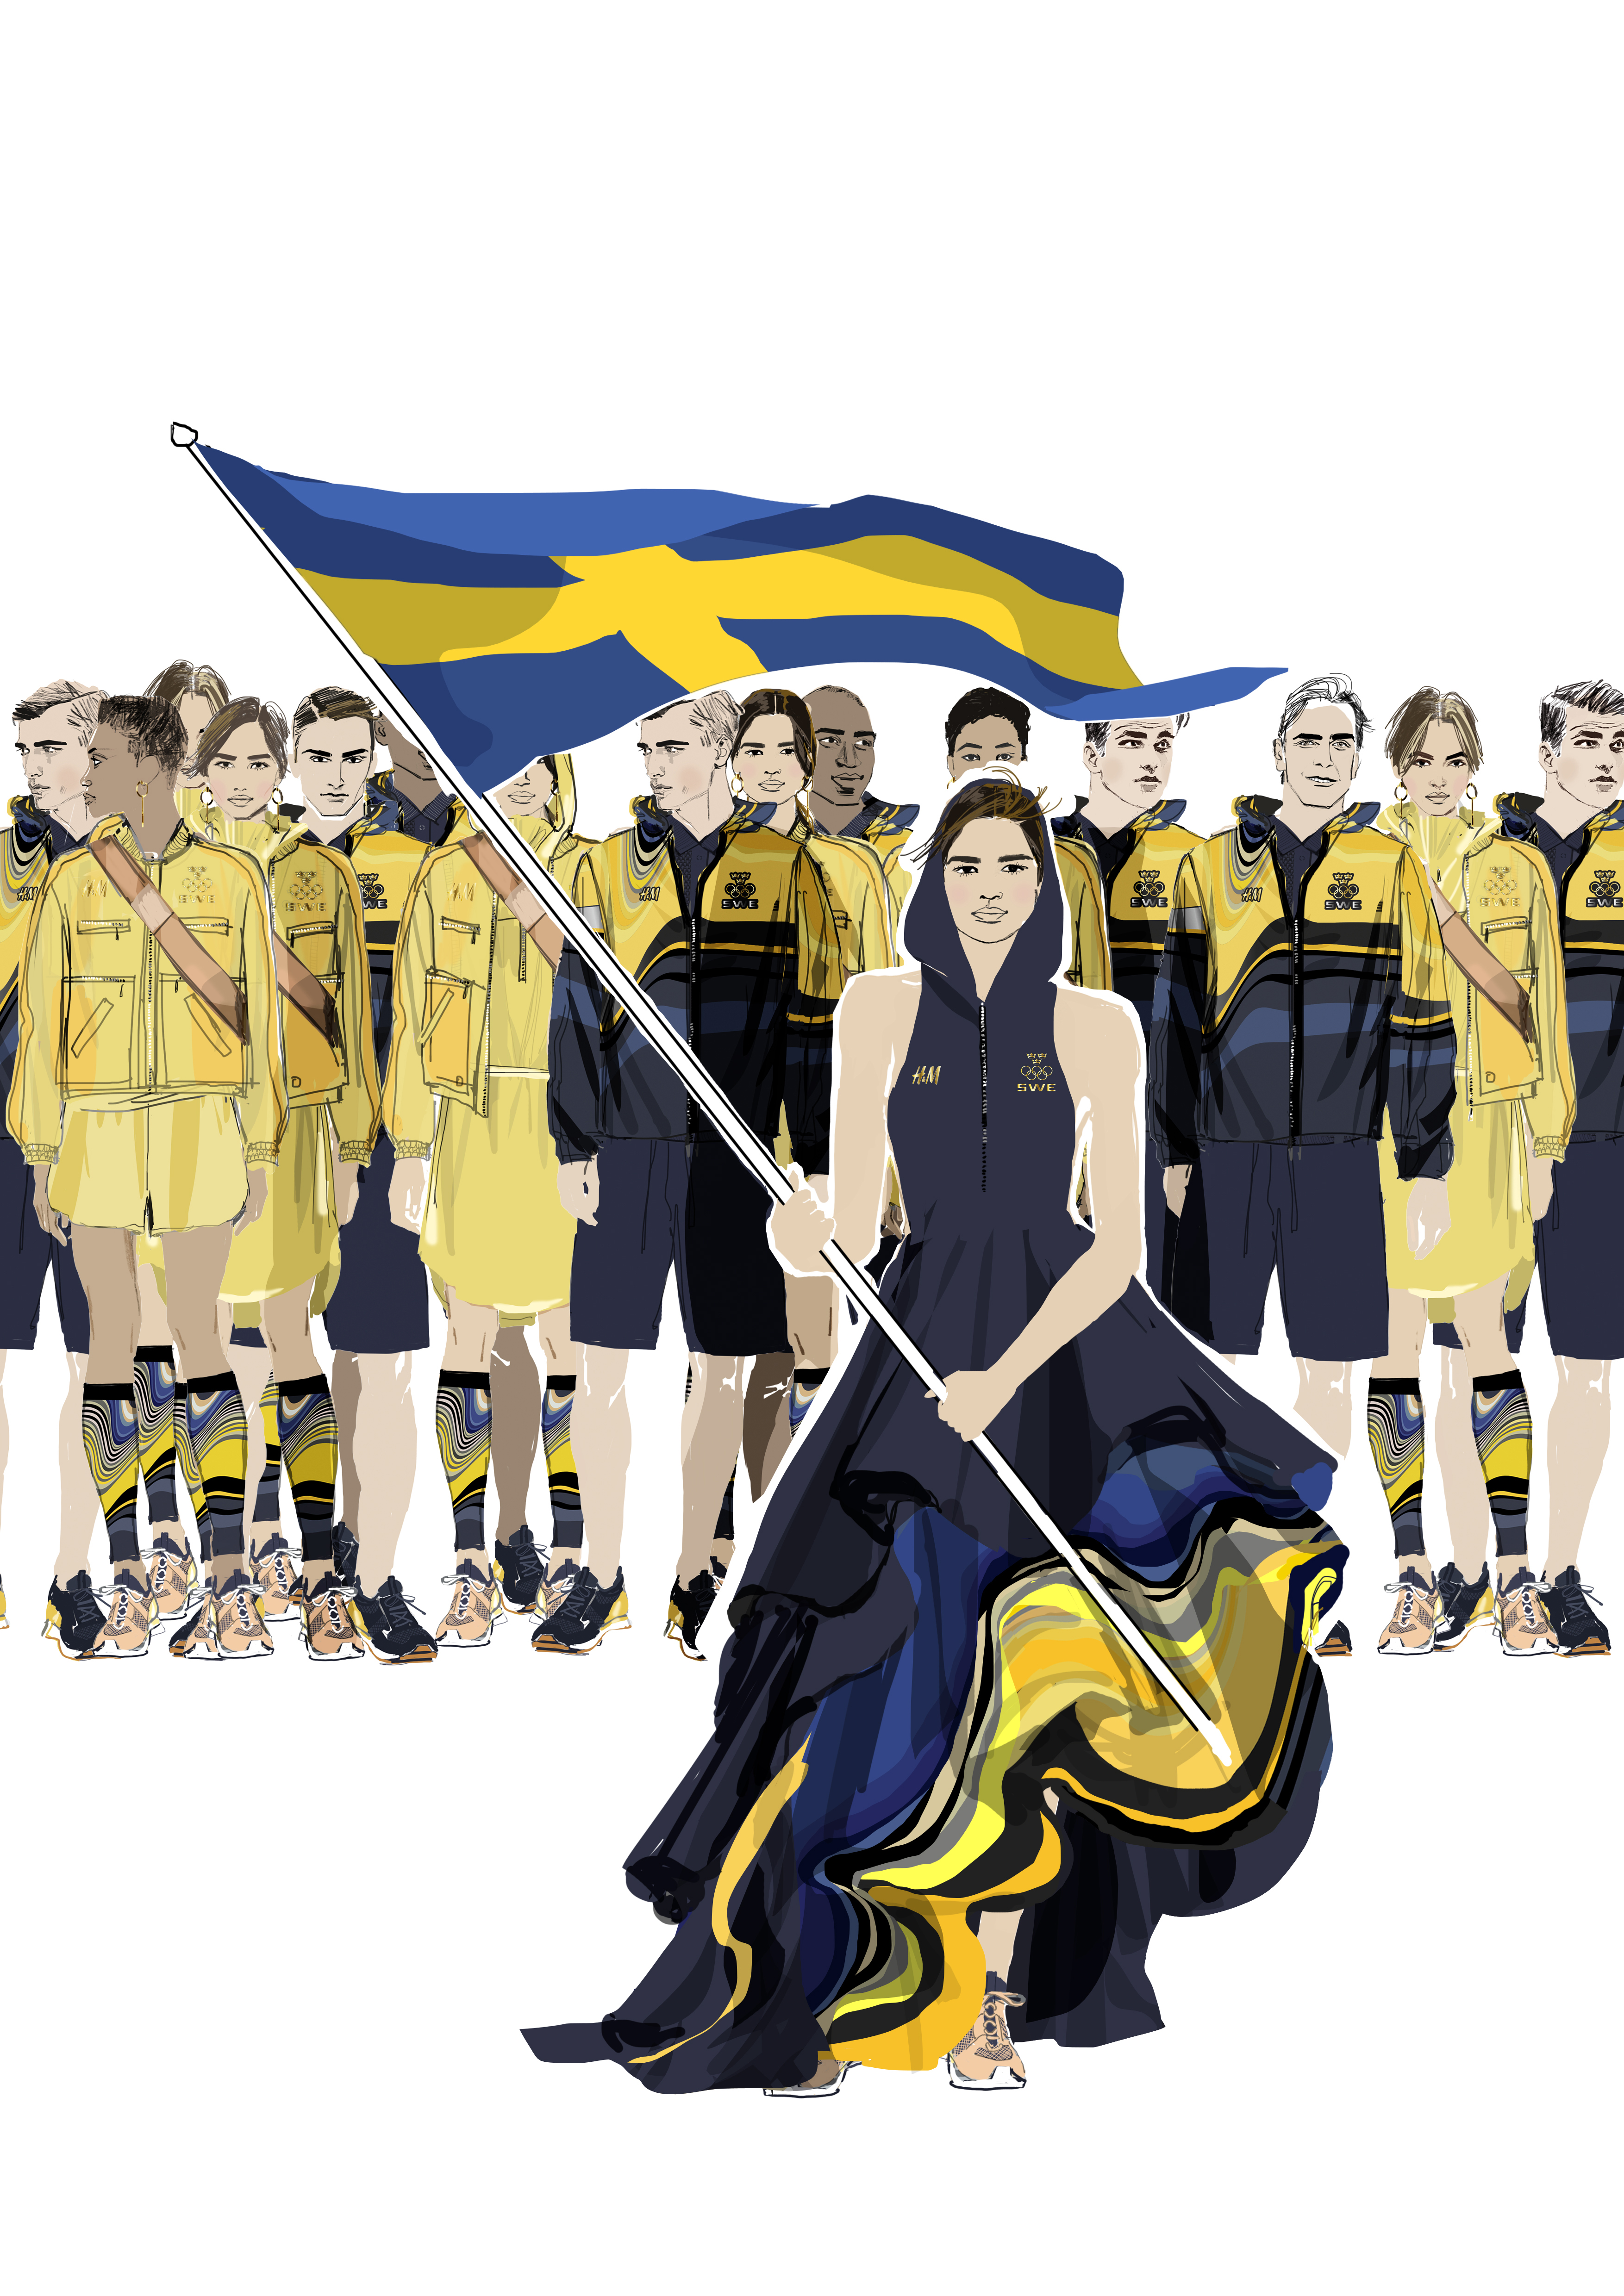 A sketch of H&M's outfits for Swedish athletes at the opening ceremony of the Rio Olympics